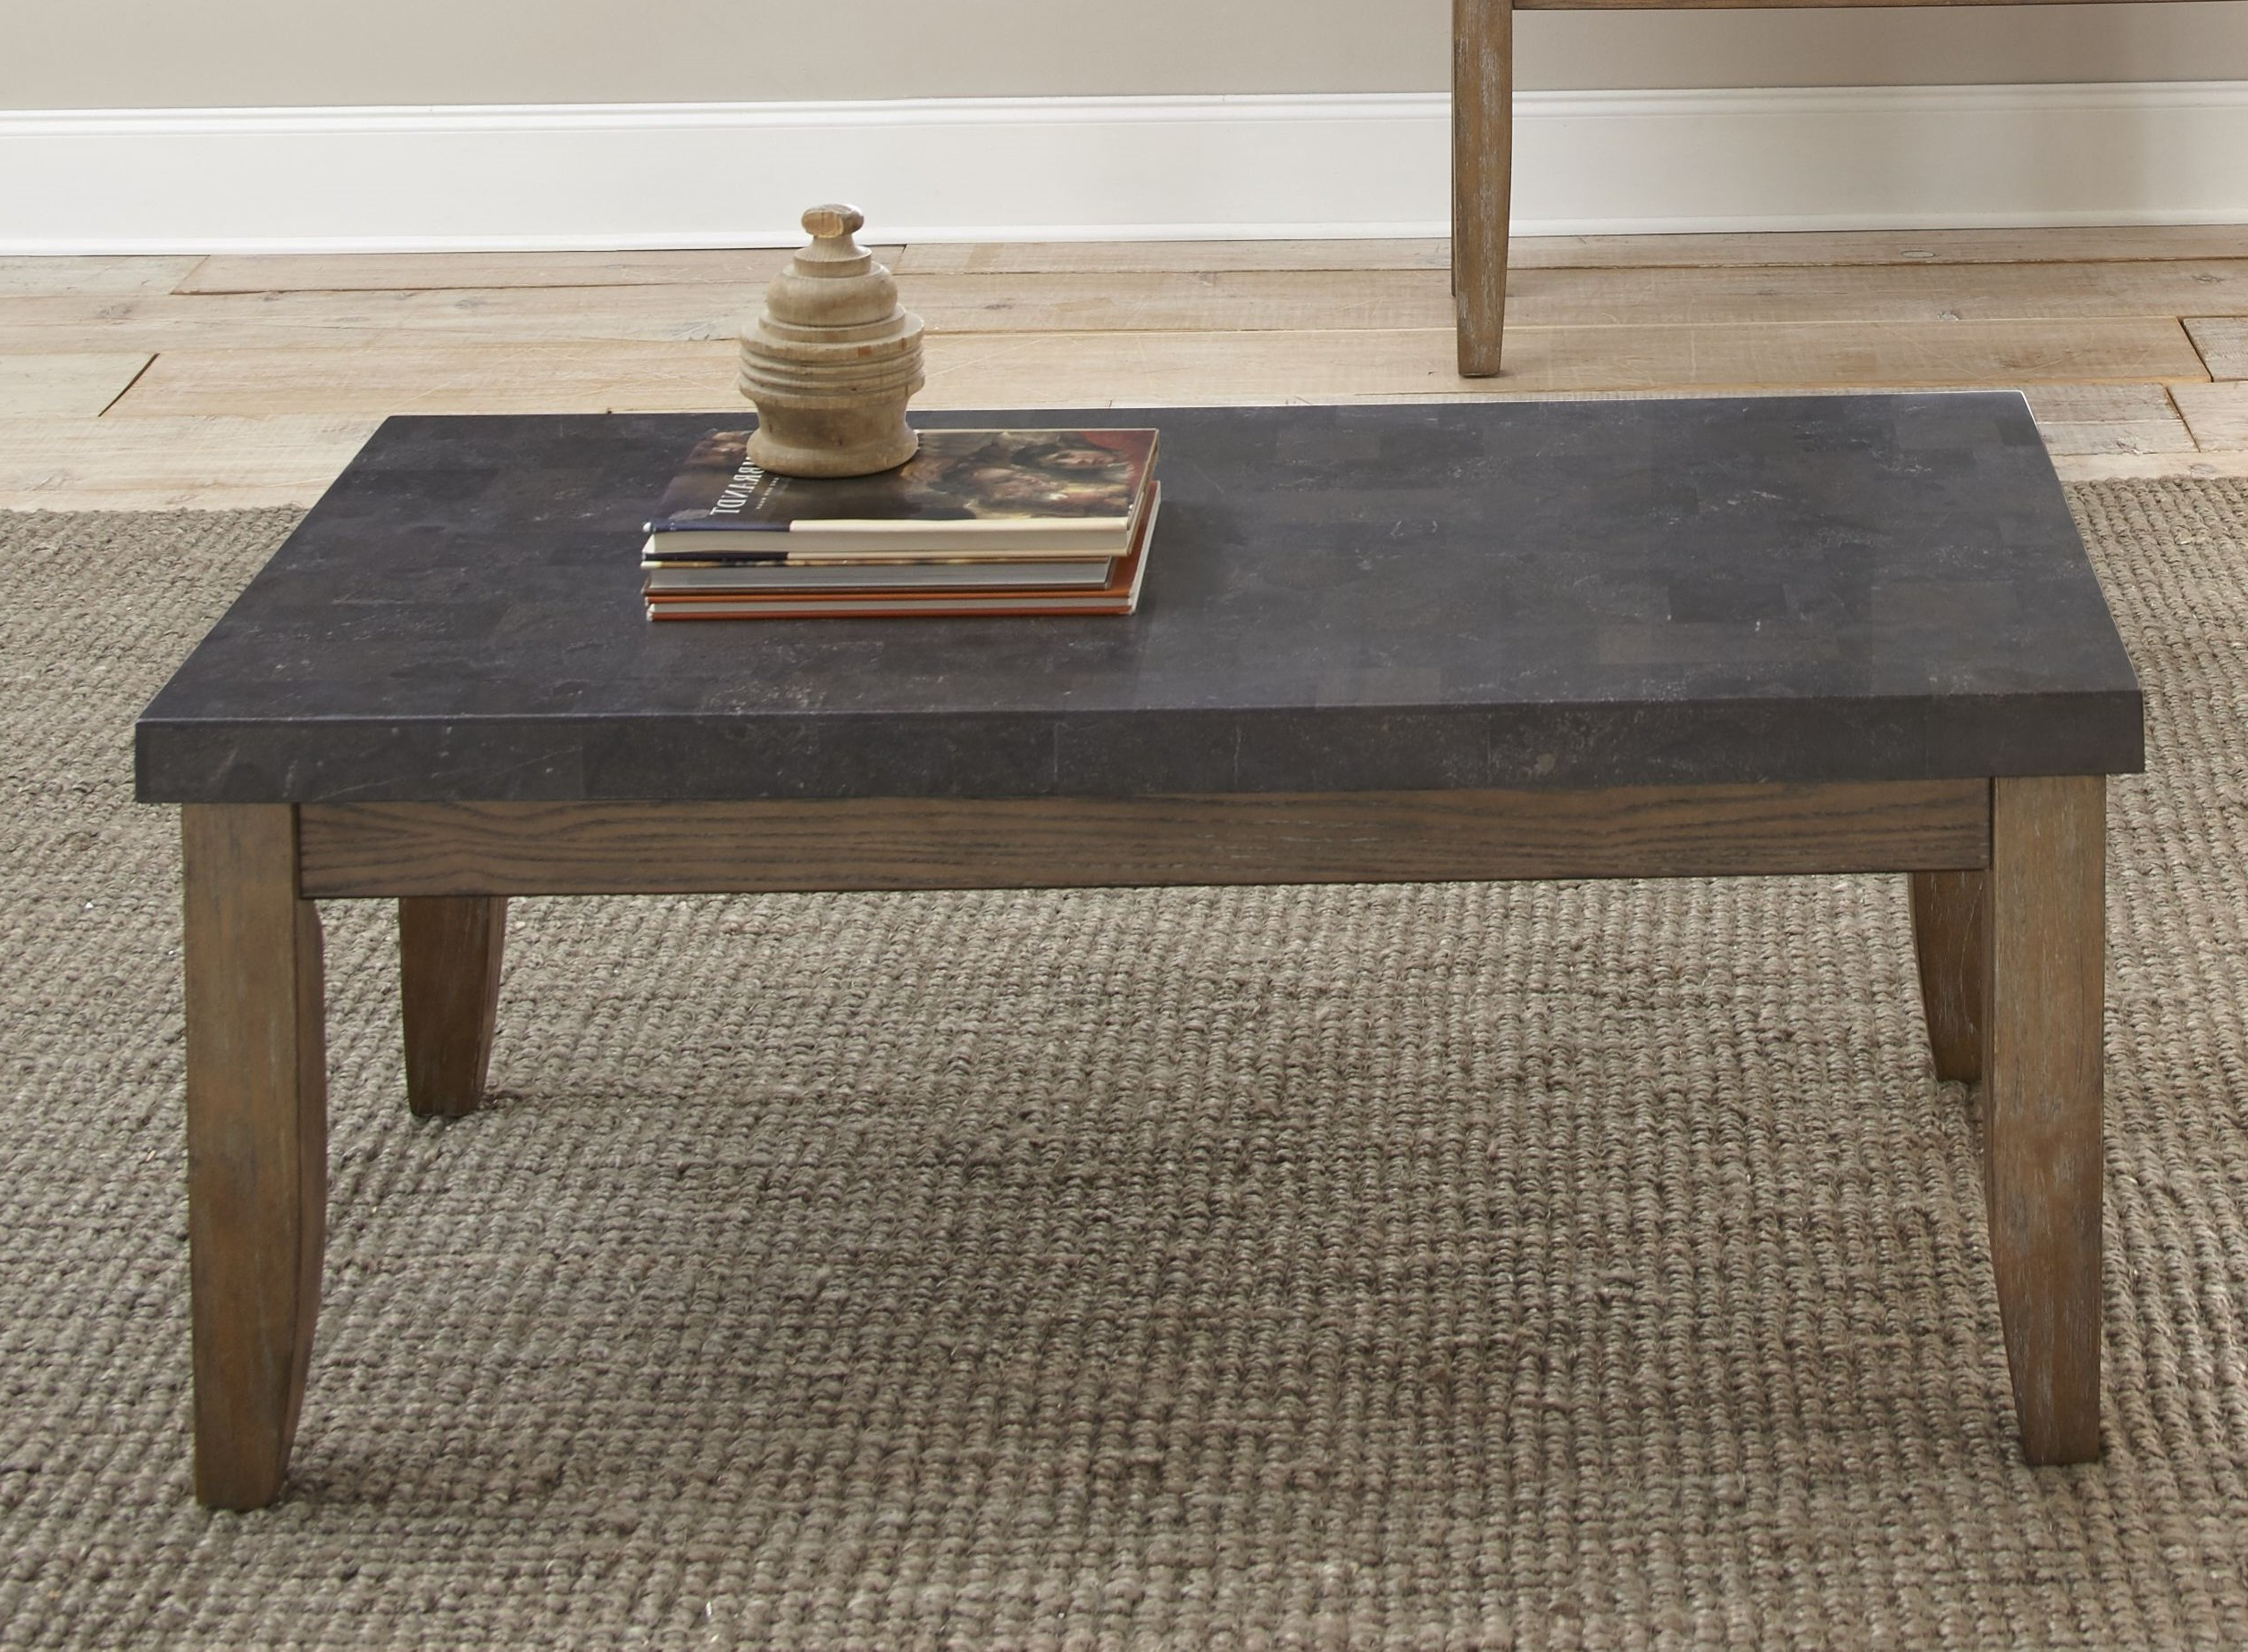 Wayfair Intended For Favorite Bluestone Rustic Black Coffee Tables (View 18 of 20)